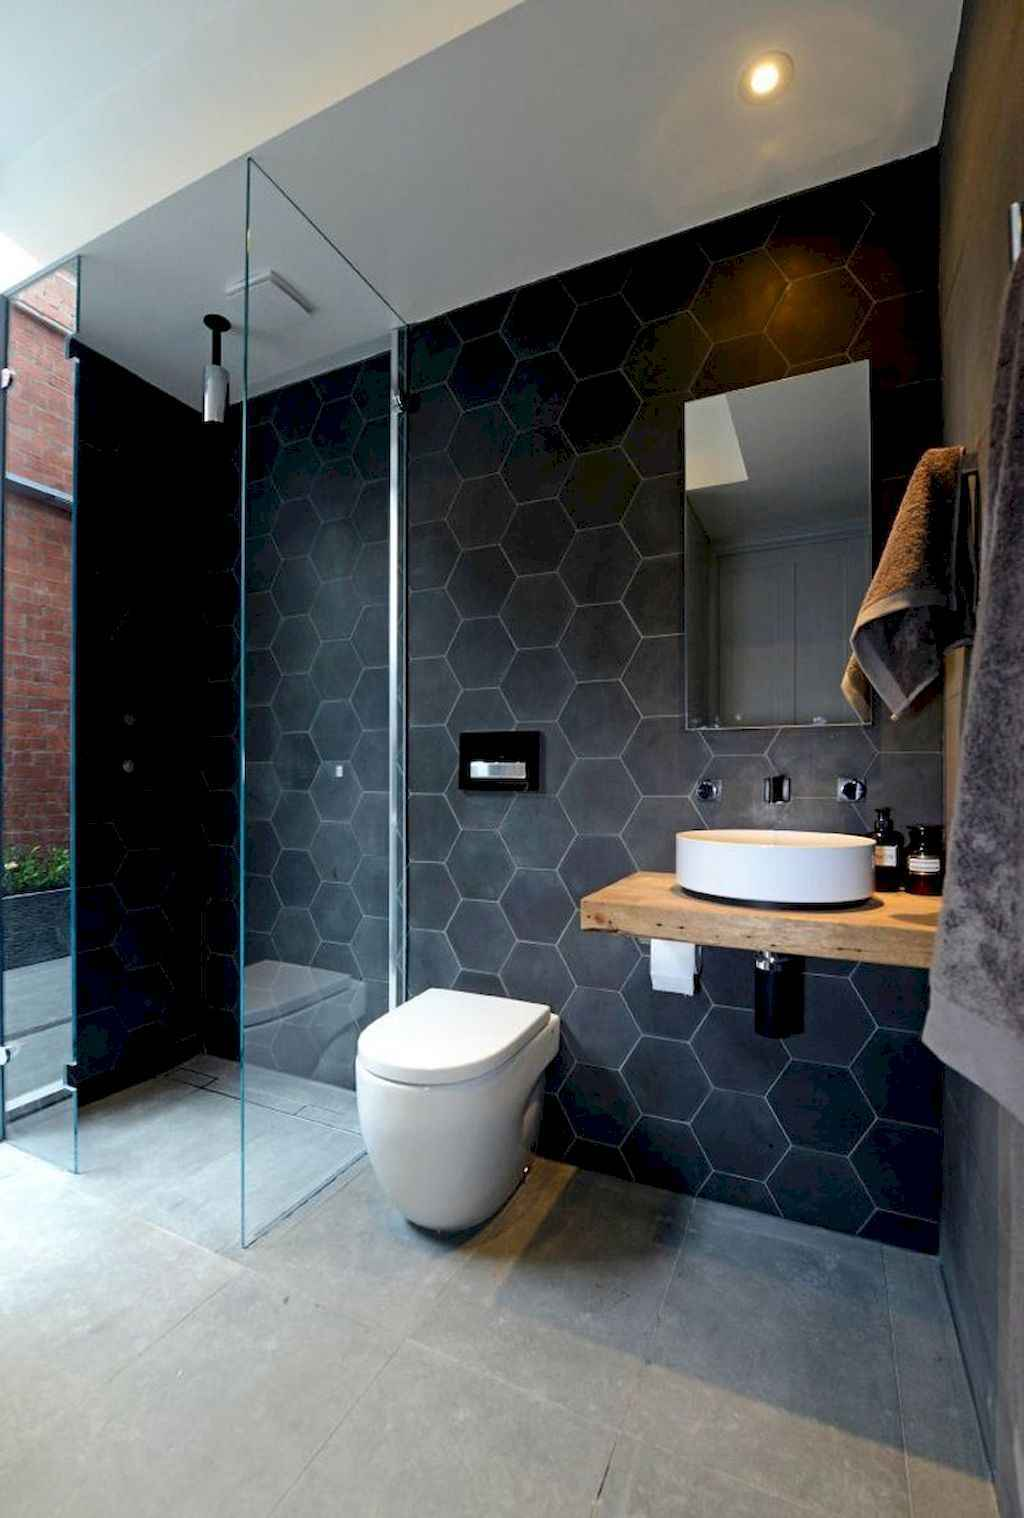 111 awesome small bathroom remodel ideas on a budget (110)